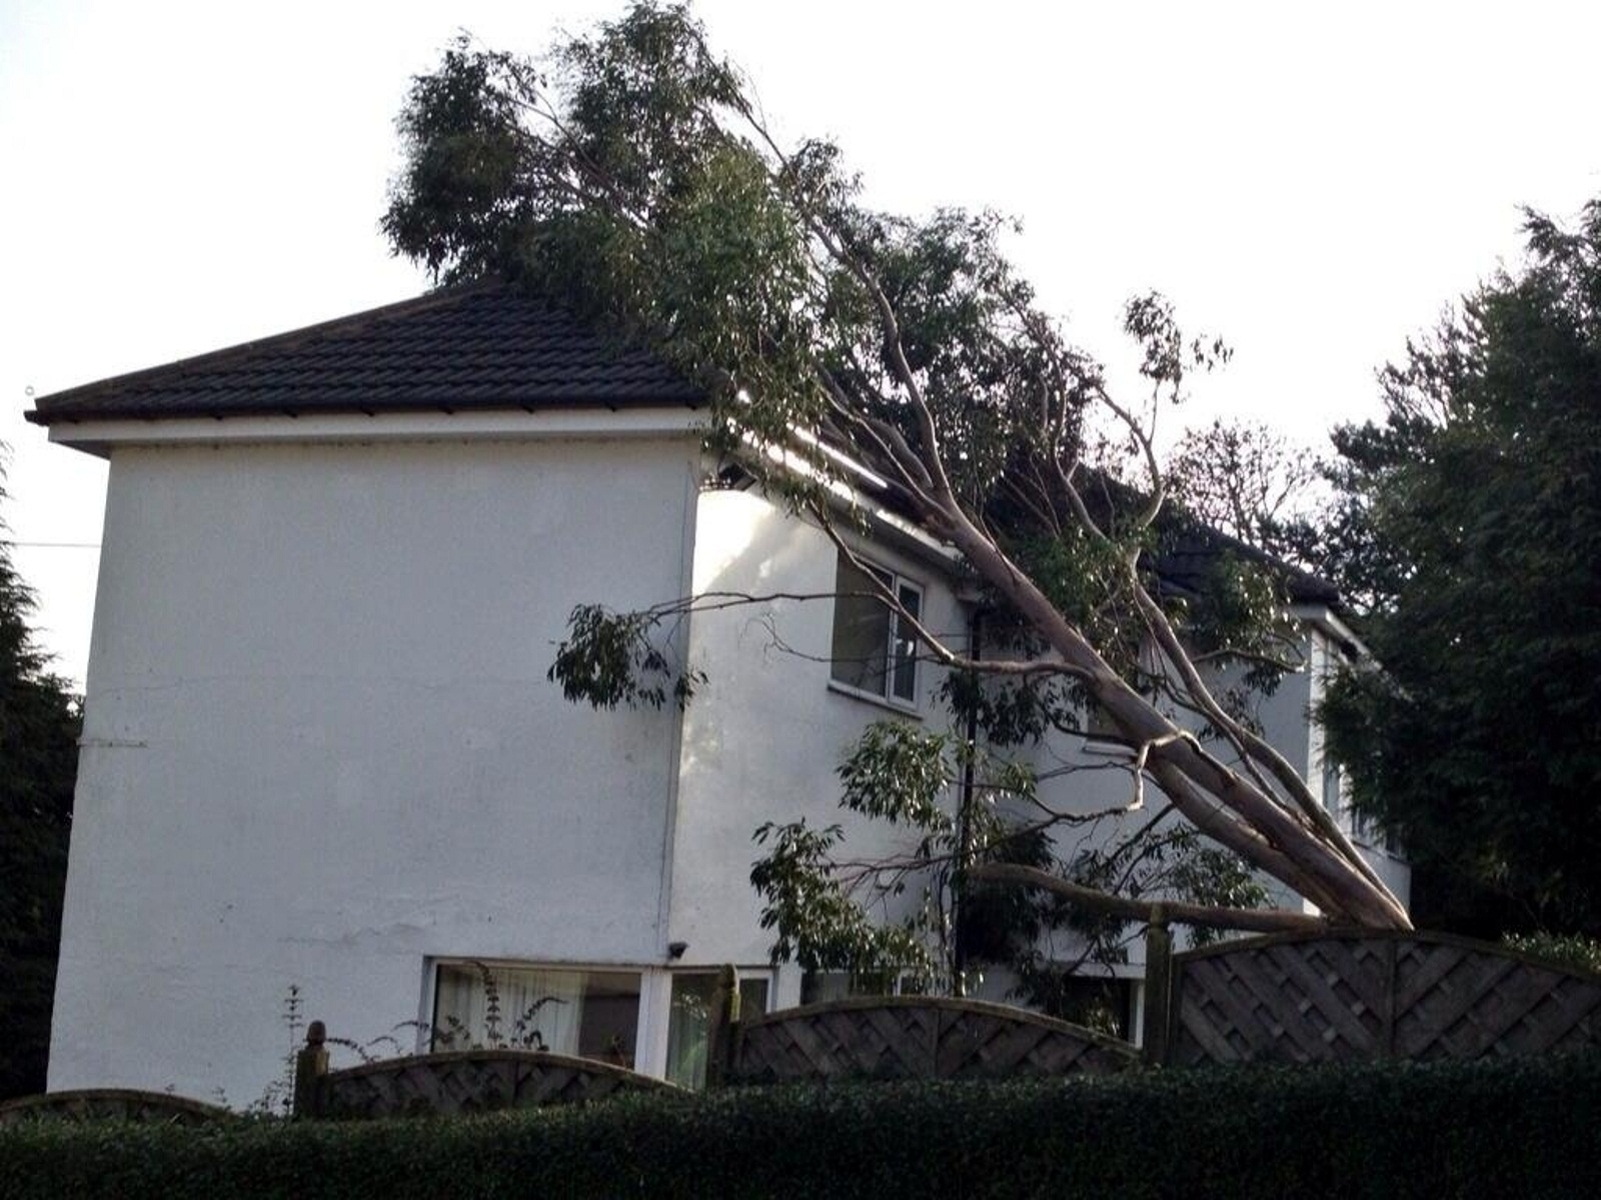 A tree that was blown over in the storms onto a house in Guiseley